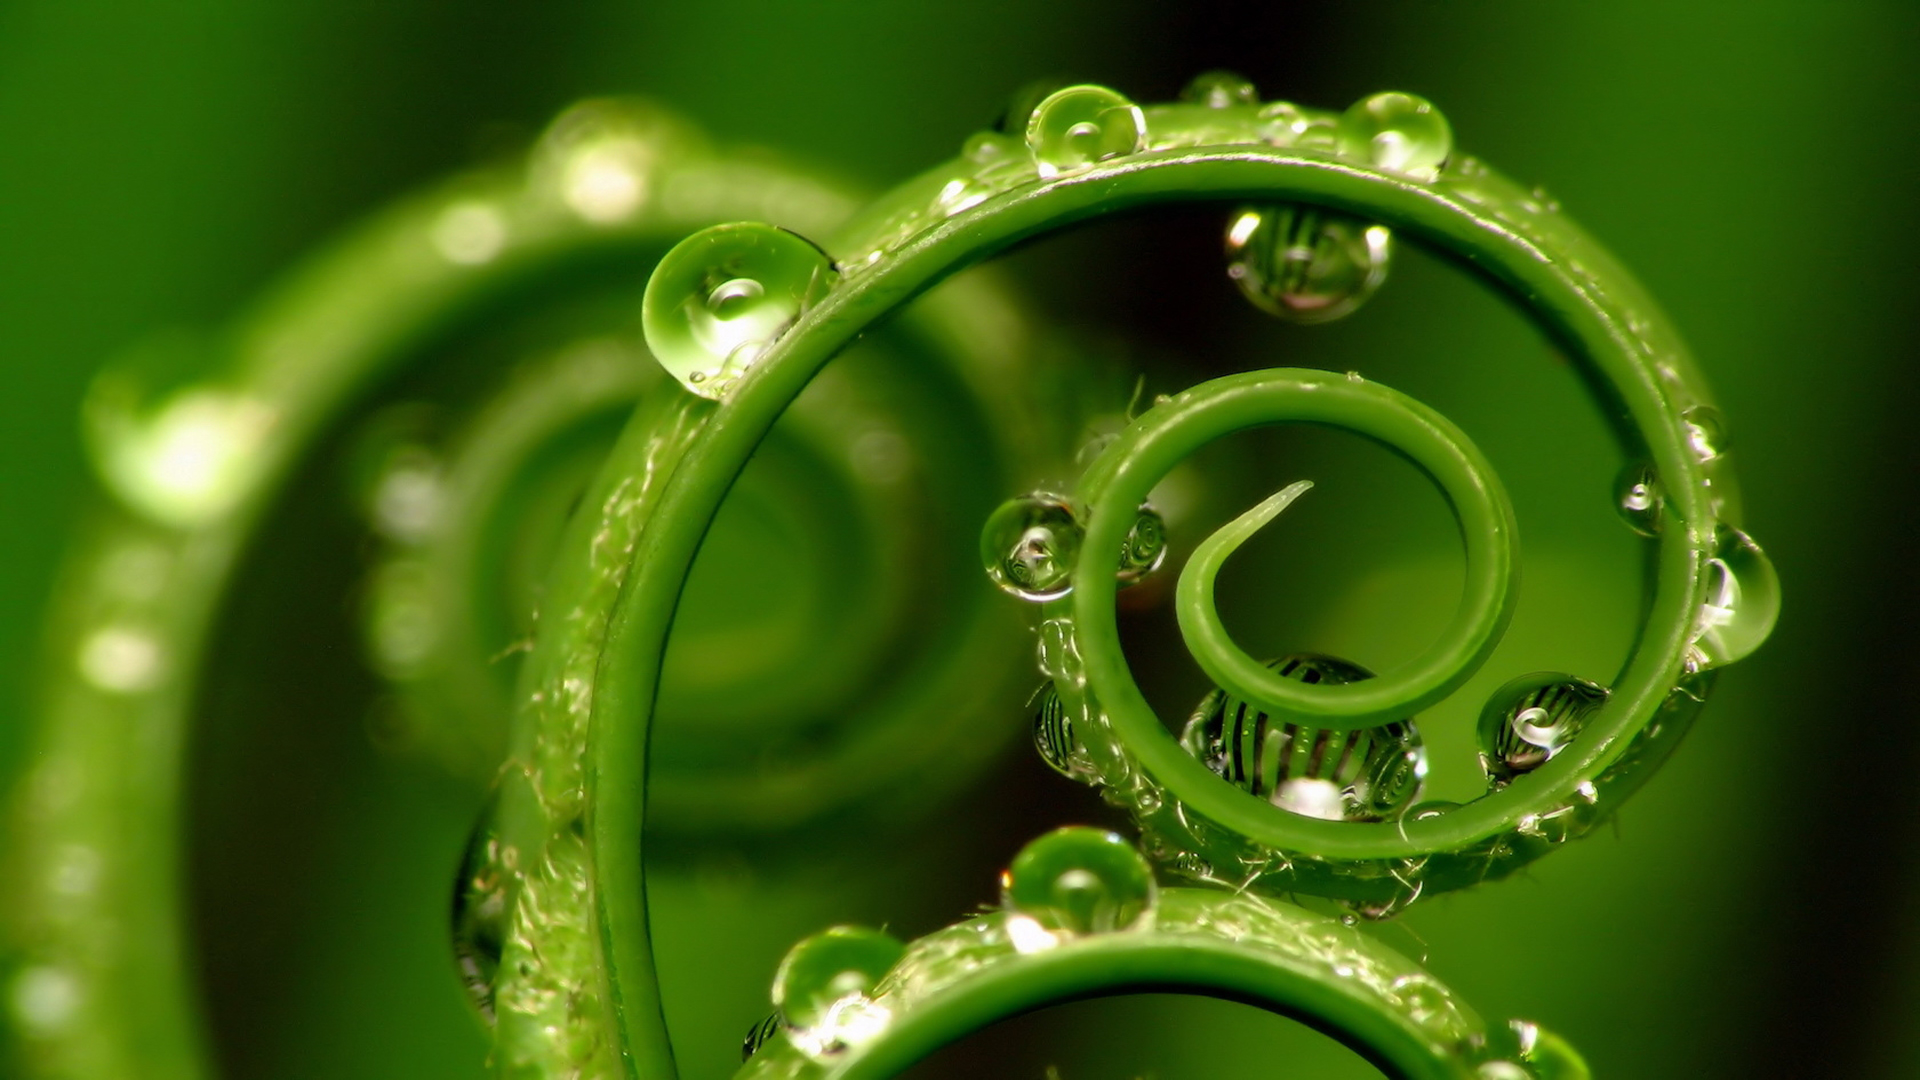 hd wallpaper you are viewing the nature wallpaper named green water hd 1920x1080